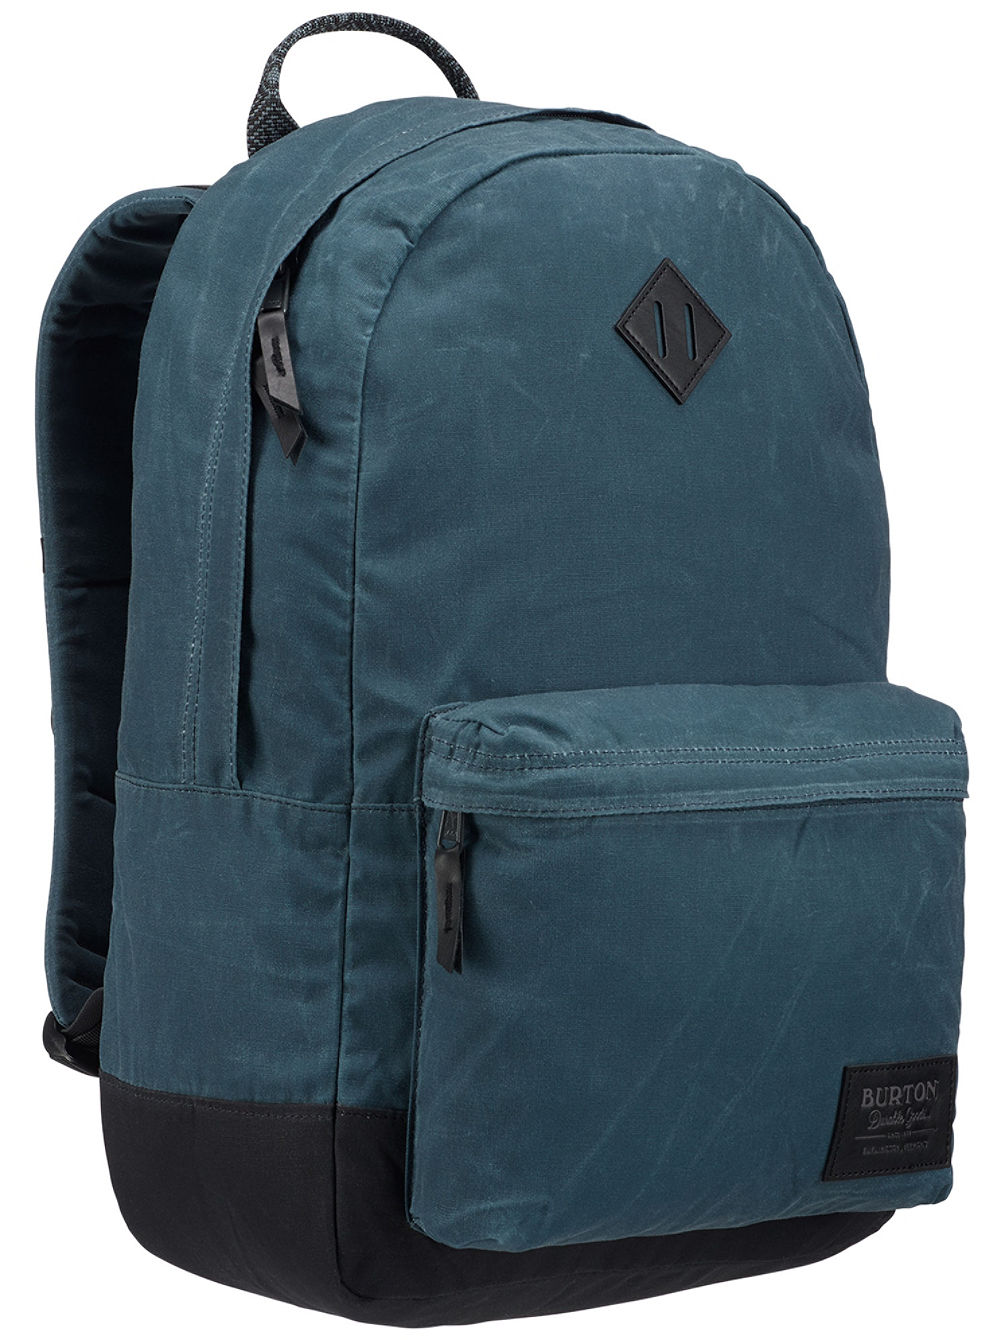 4d32227febca3 Buy Burton Kettle Backpack online at Blue Tomato